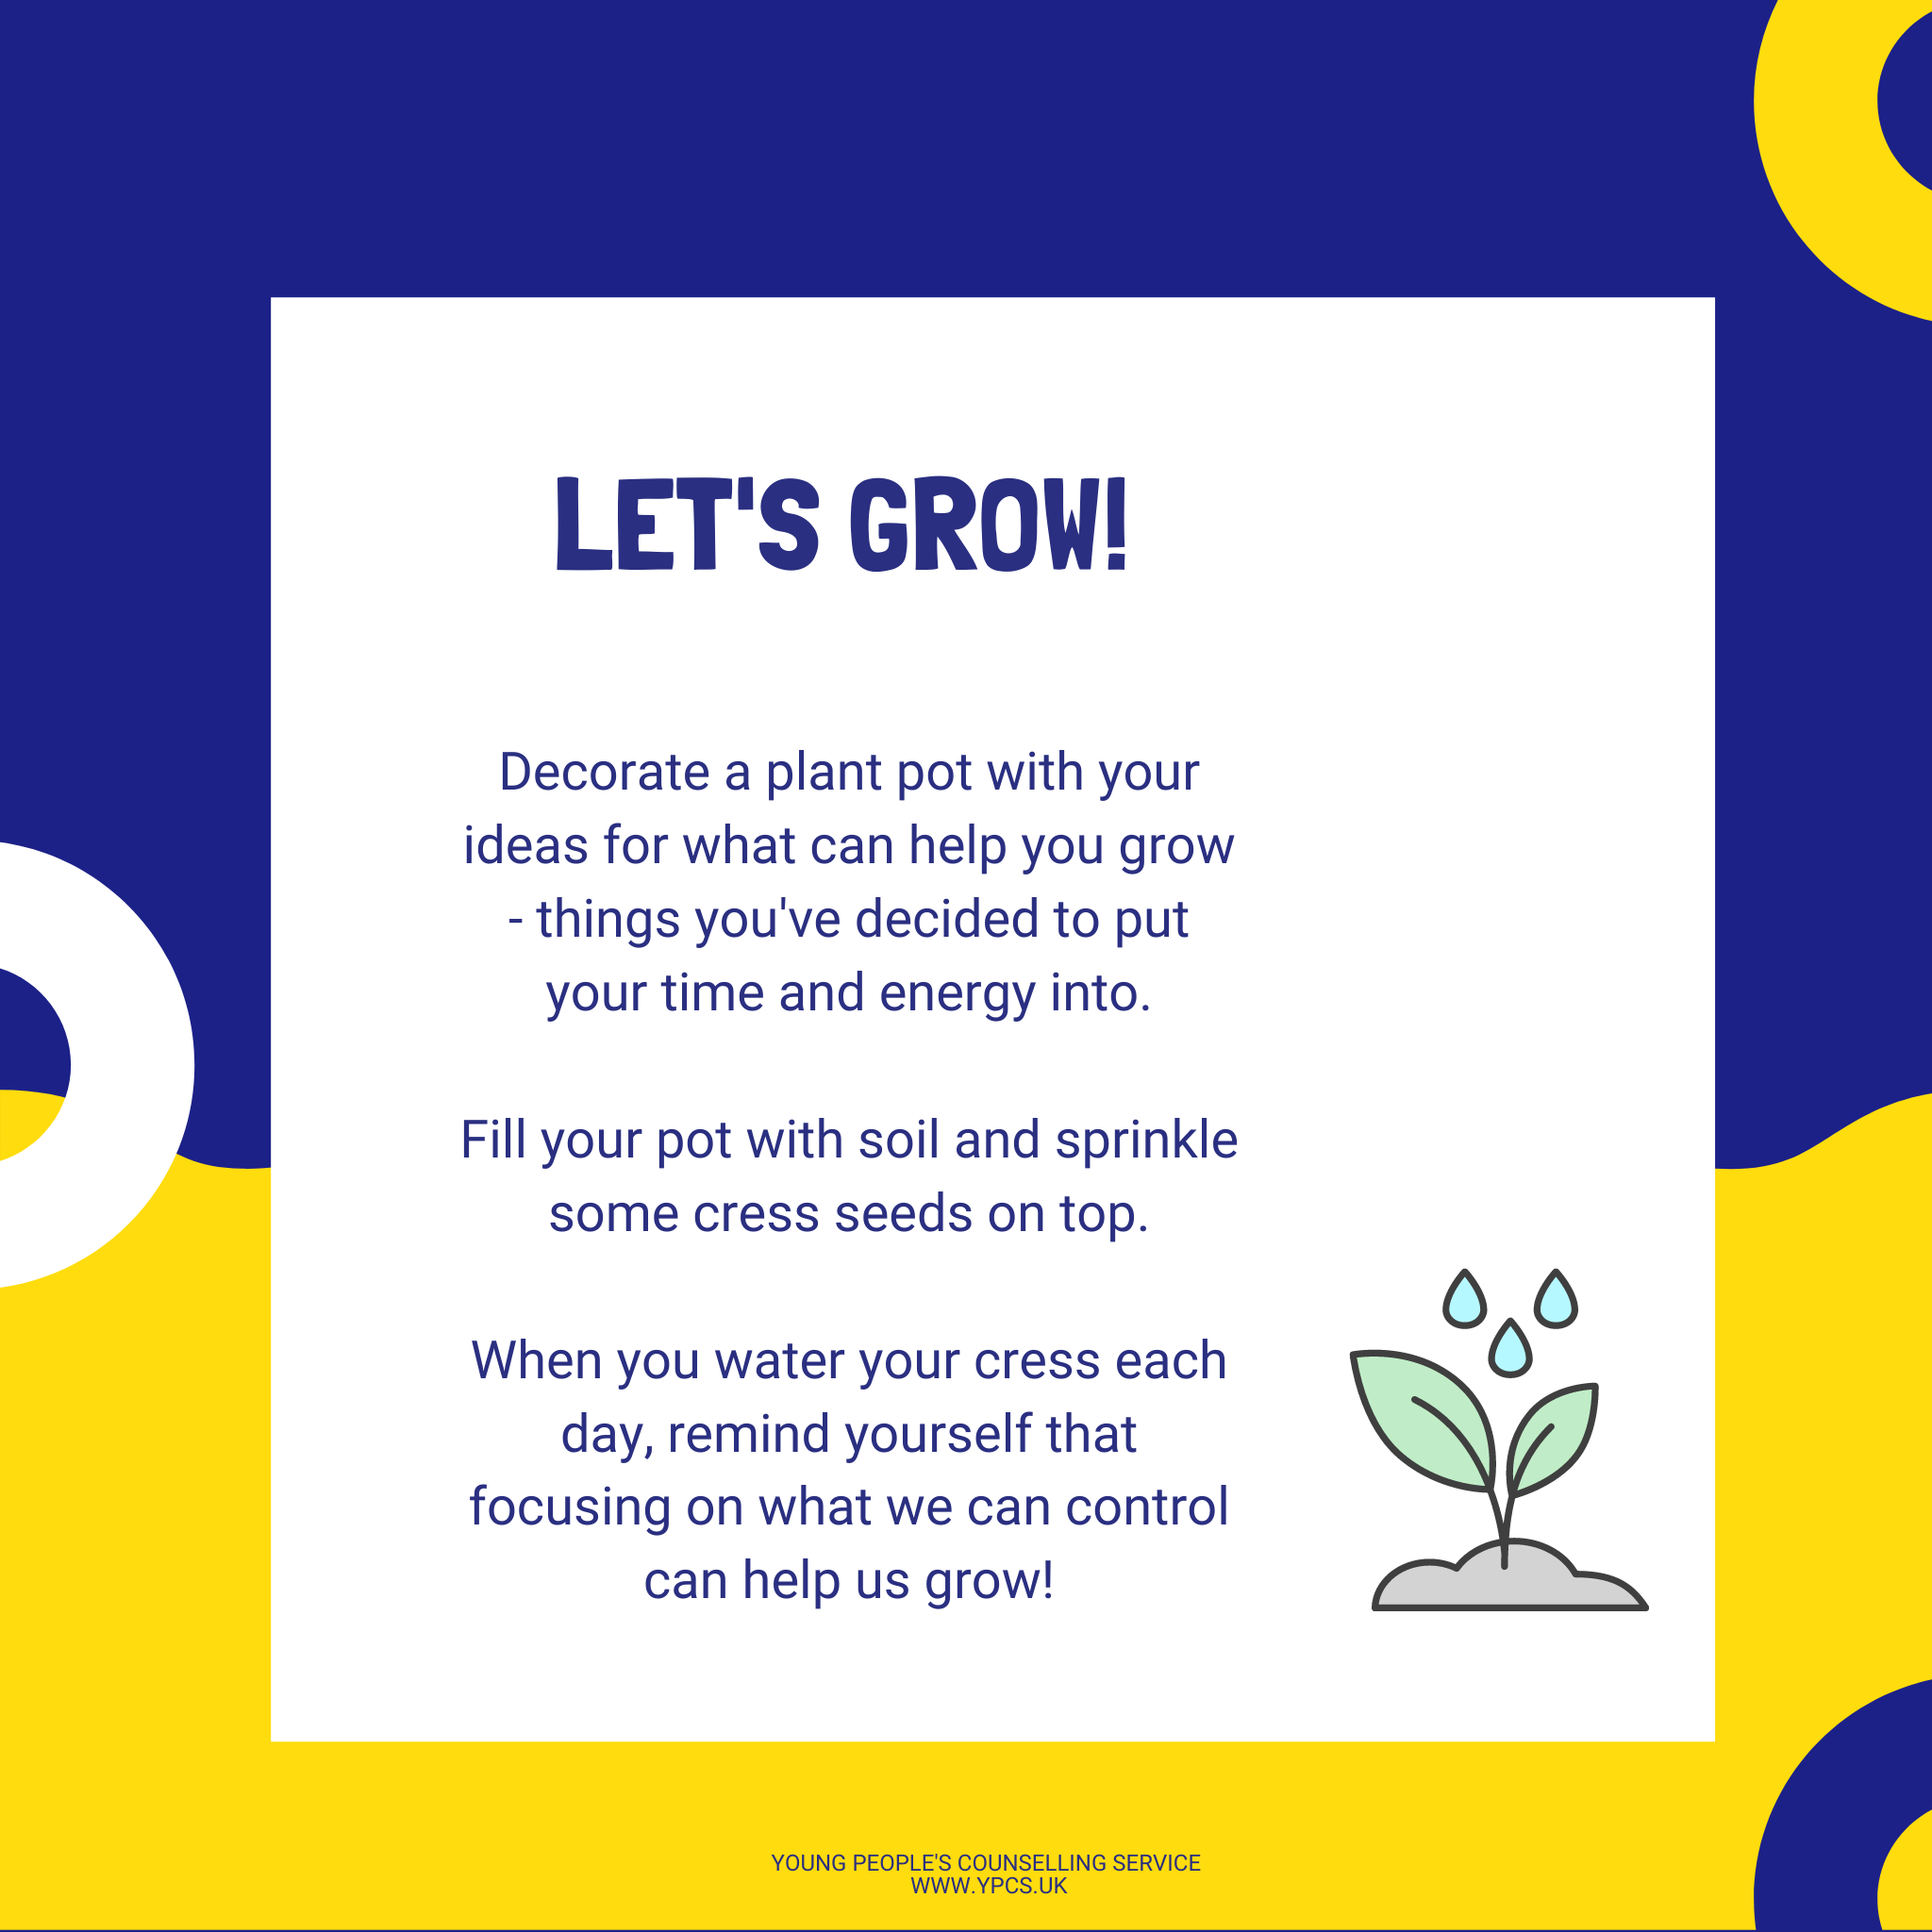 Let's Grow!